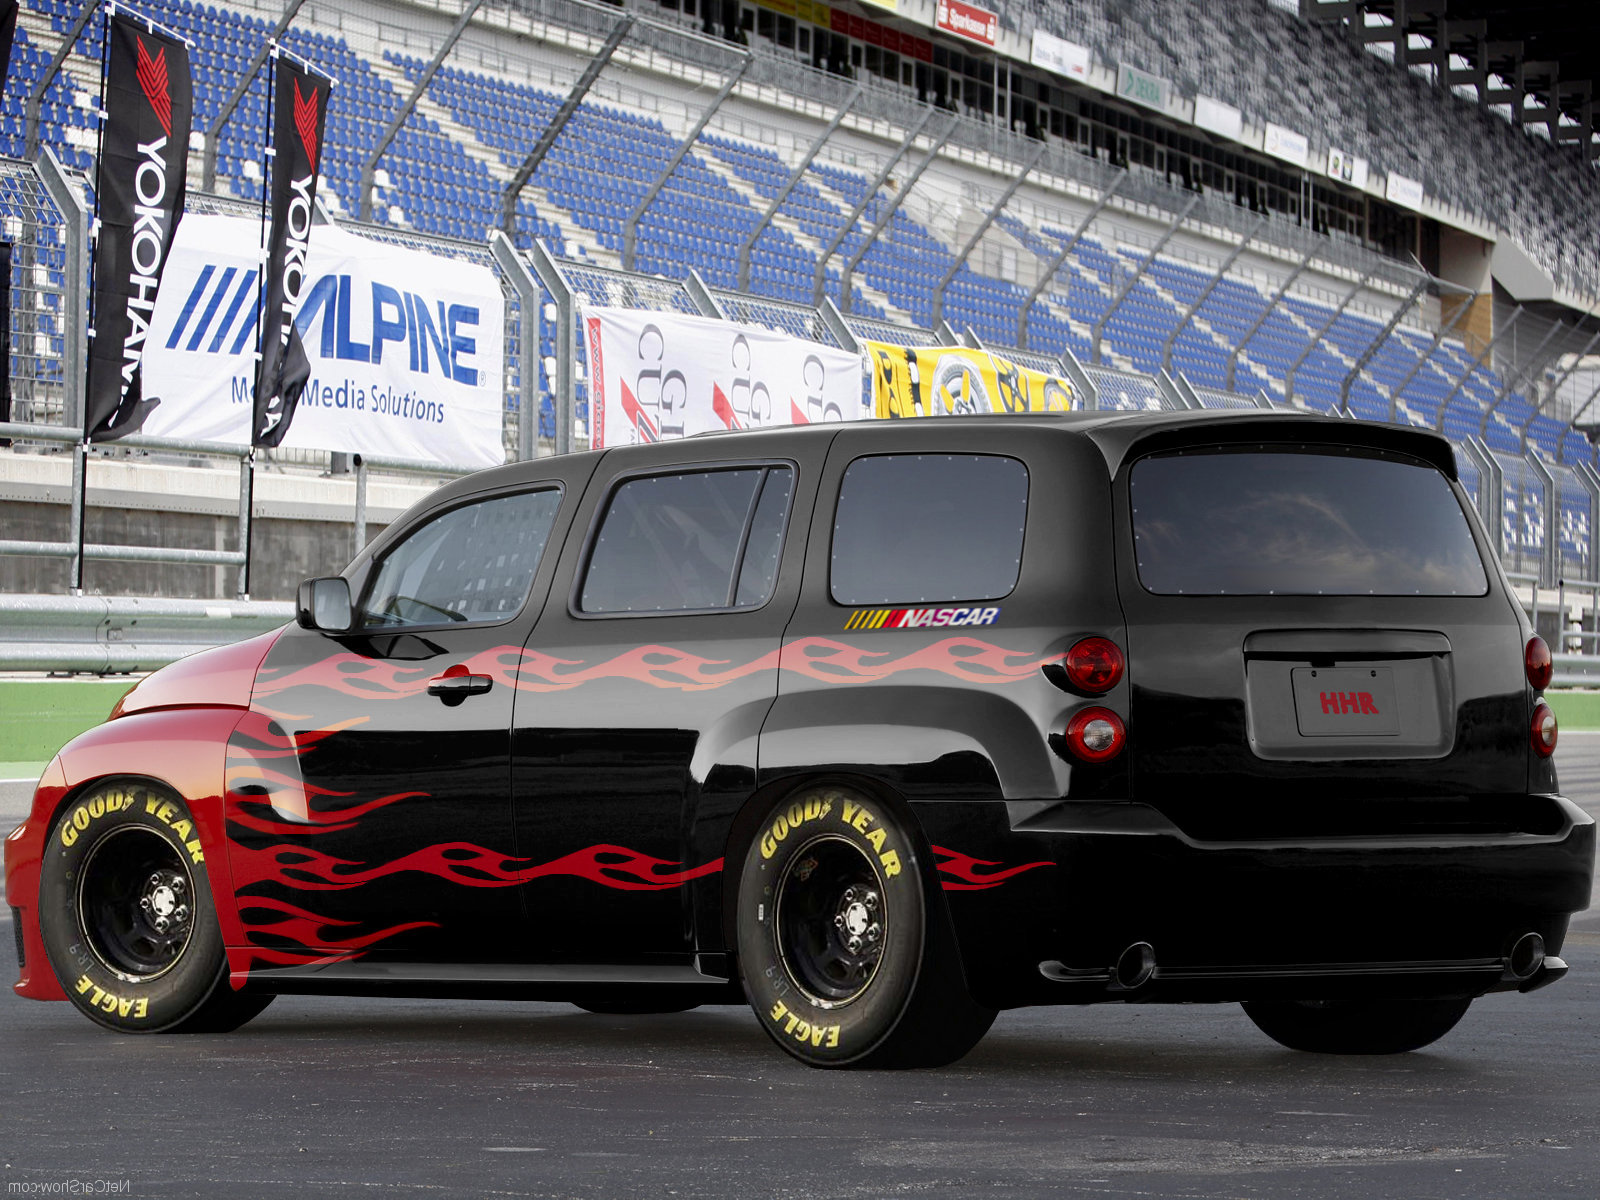 Custom Chevy Hhr At The Track With Images Chevy Hhr Hhr Car